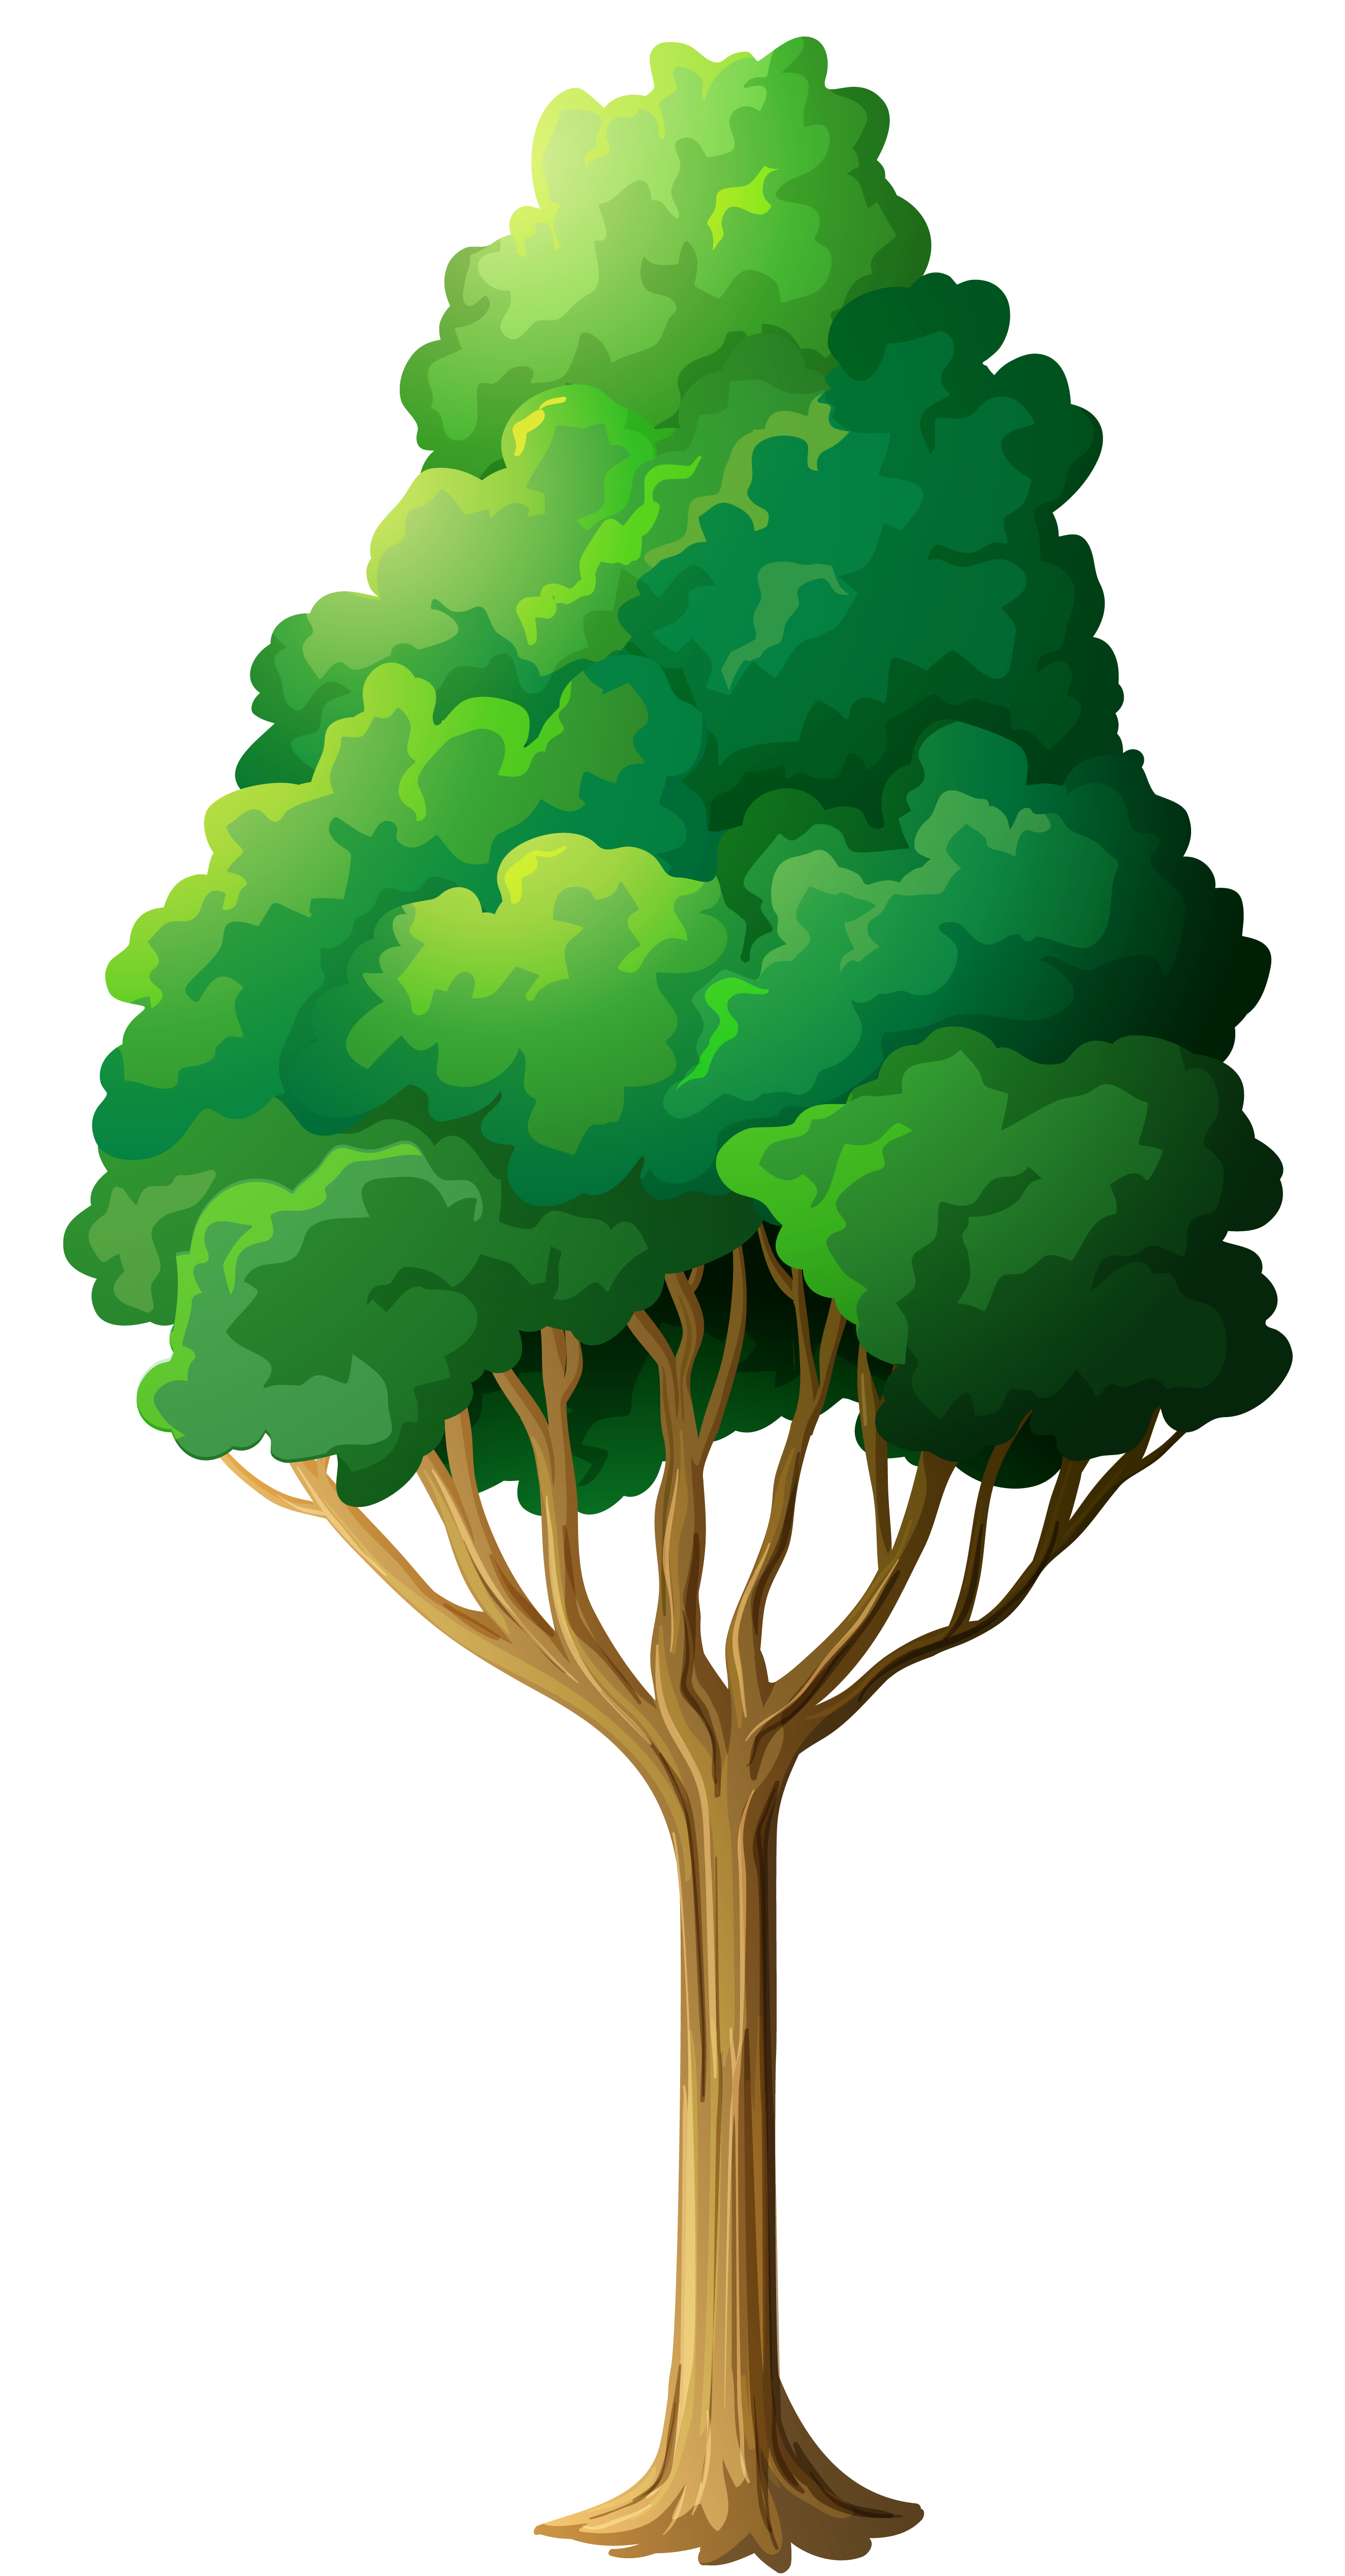 Trees Green Tree Png